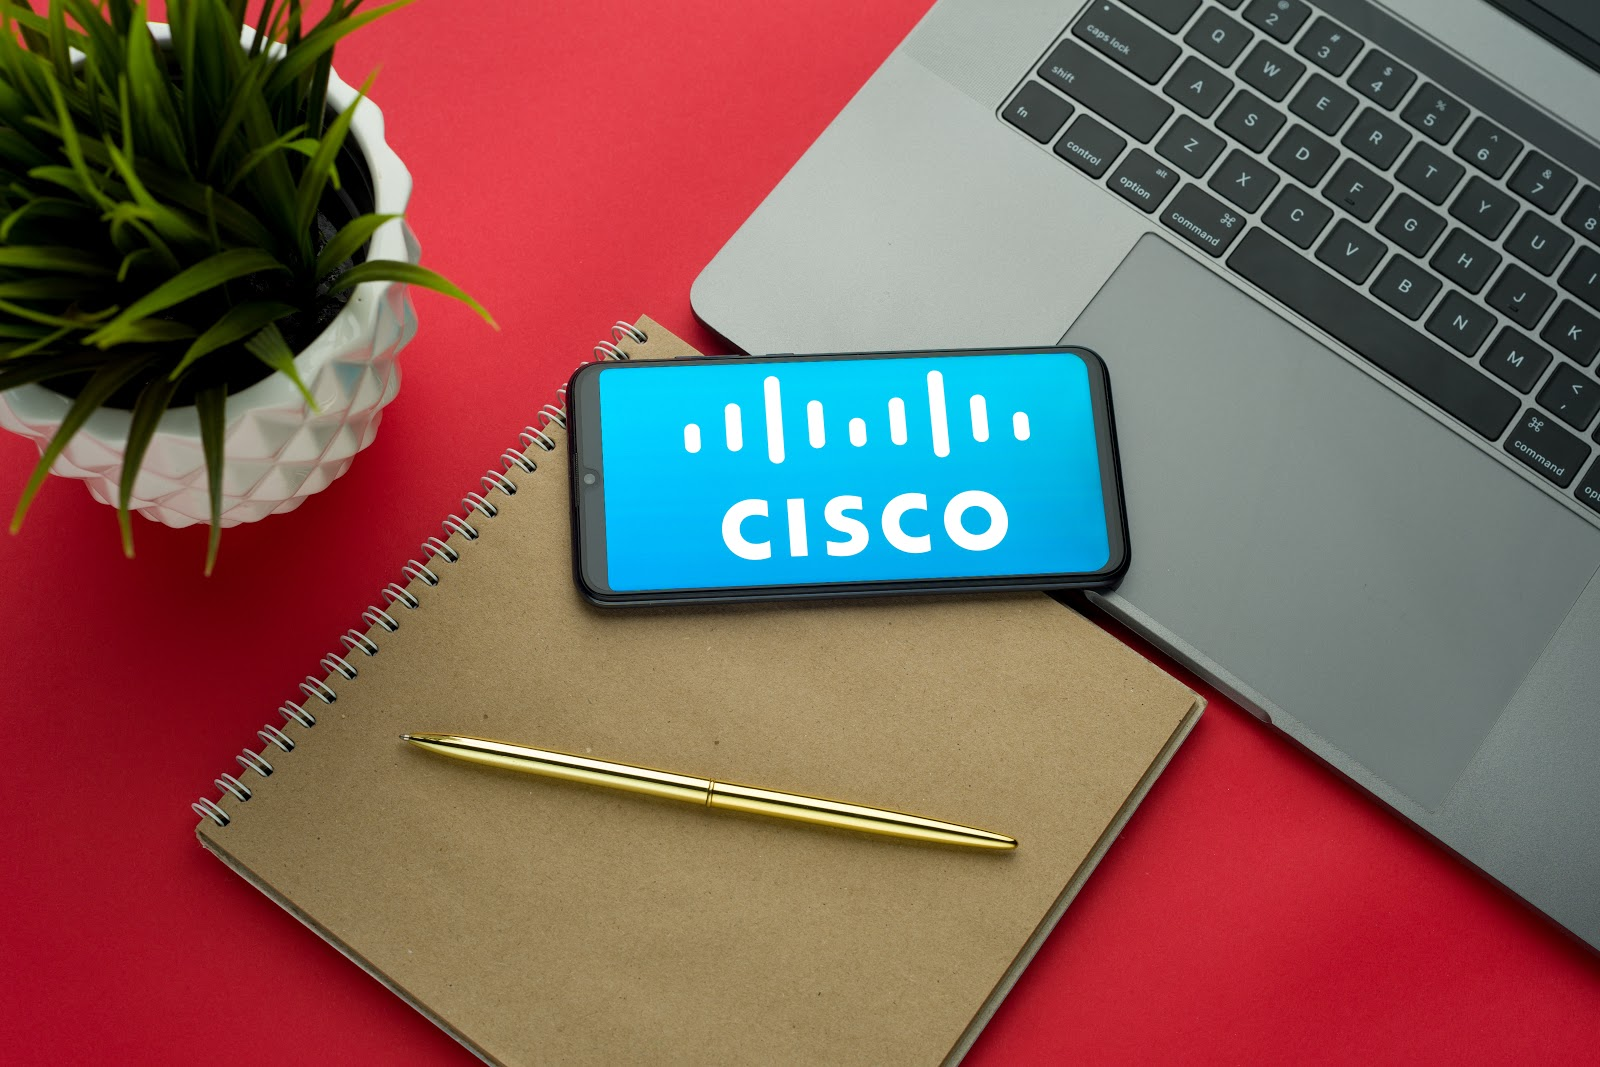 Cisco logo on a cell phone